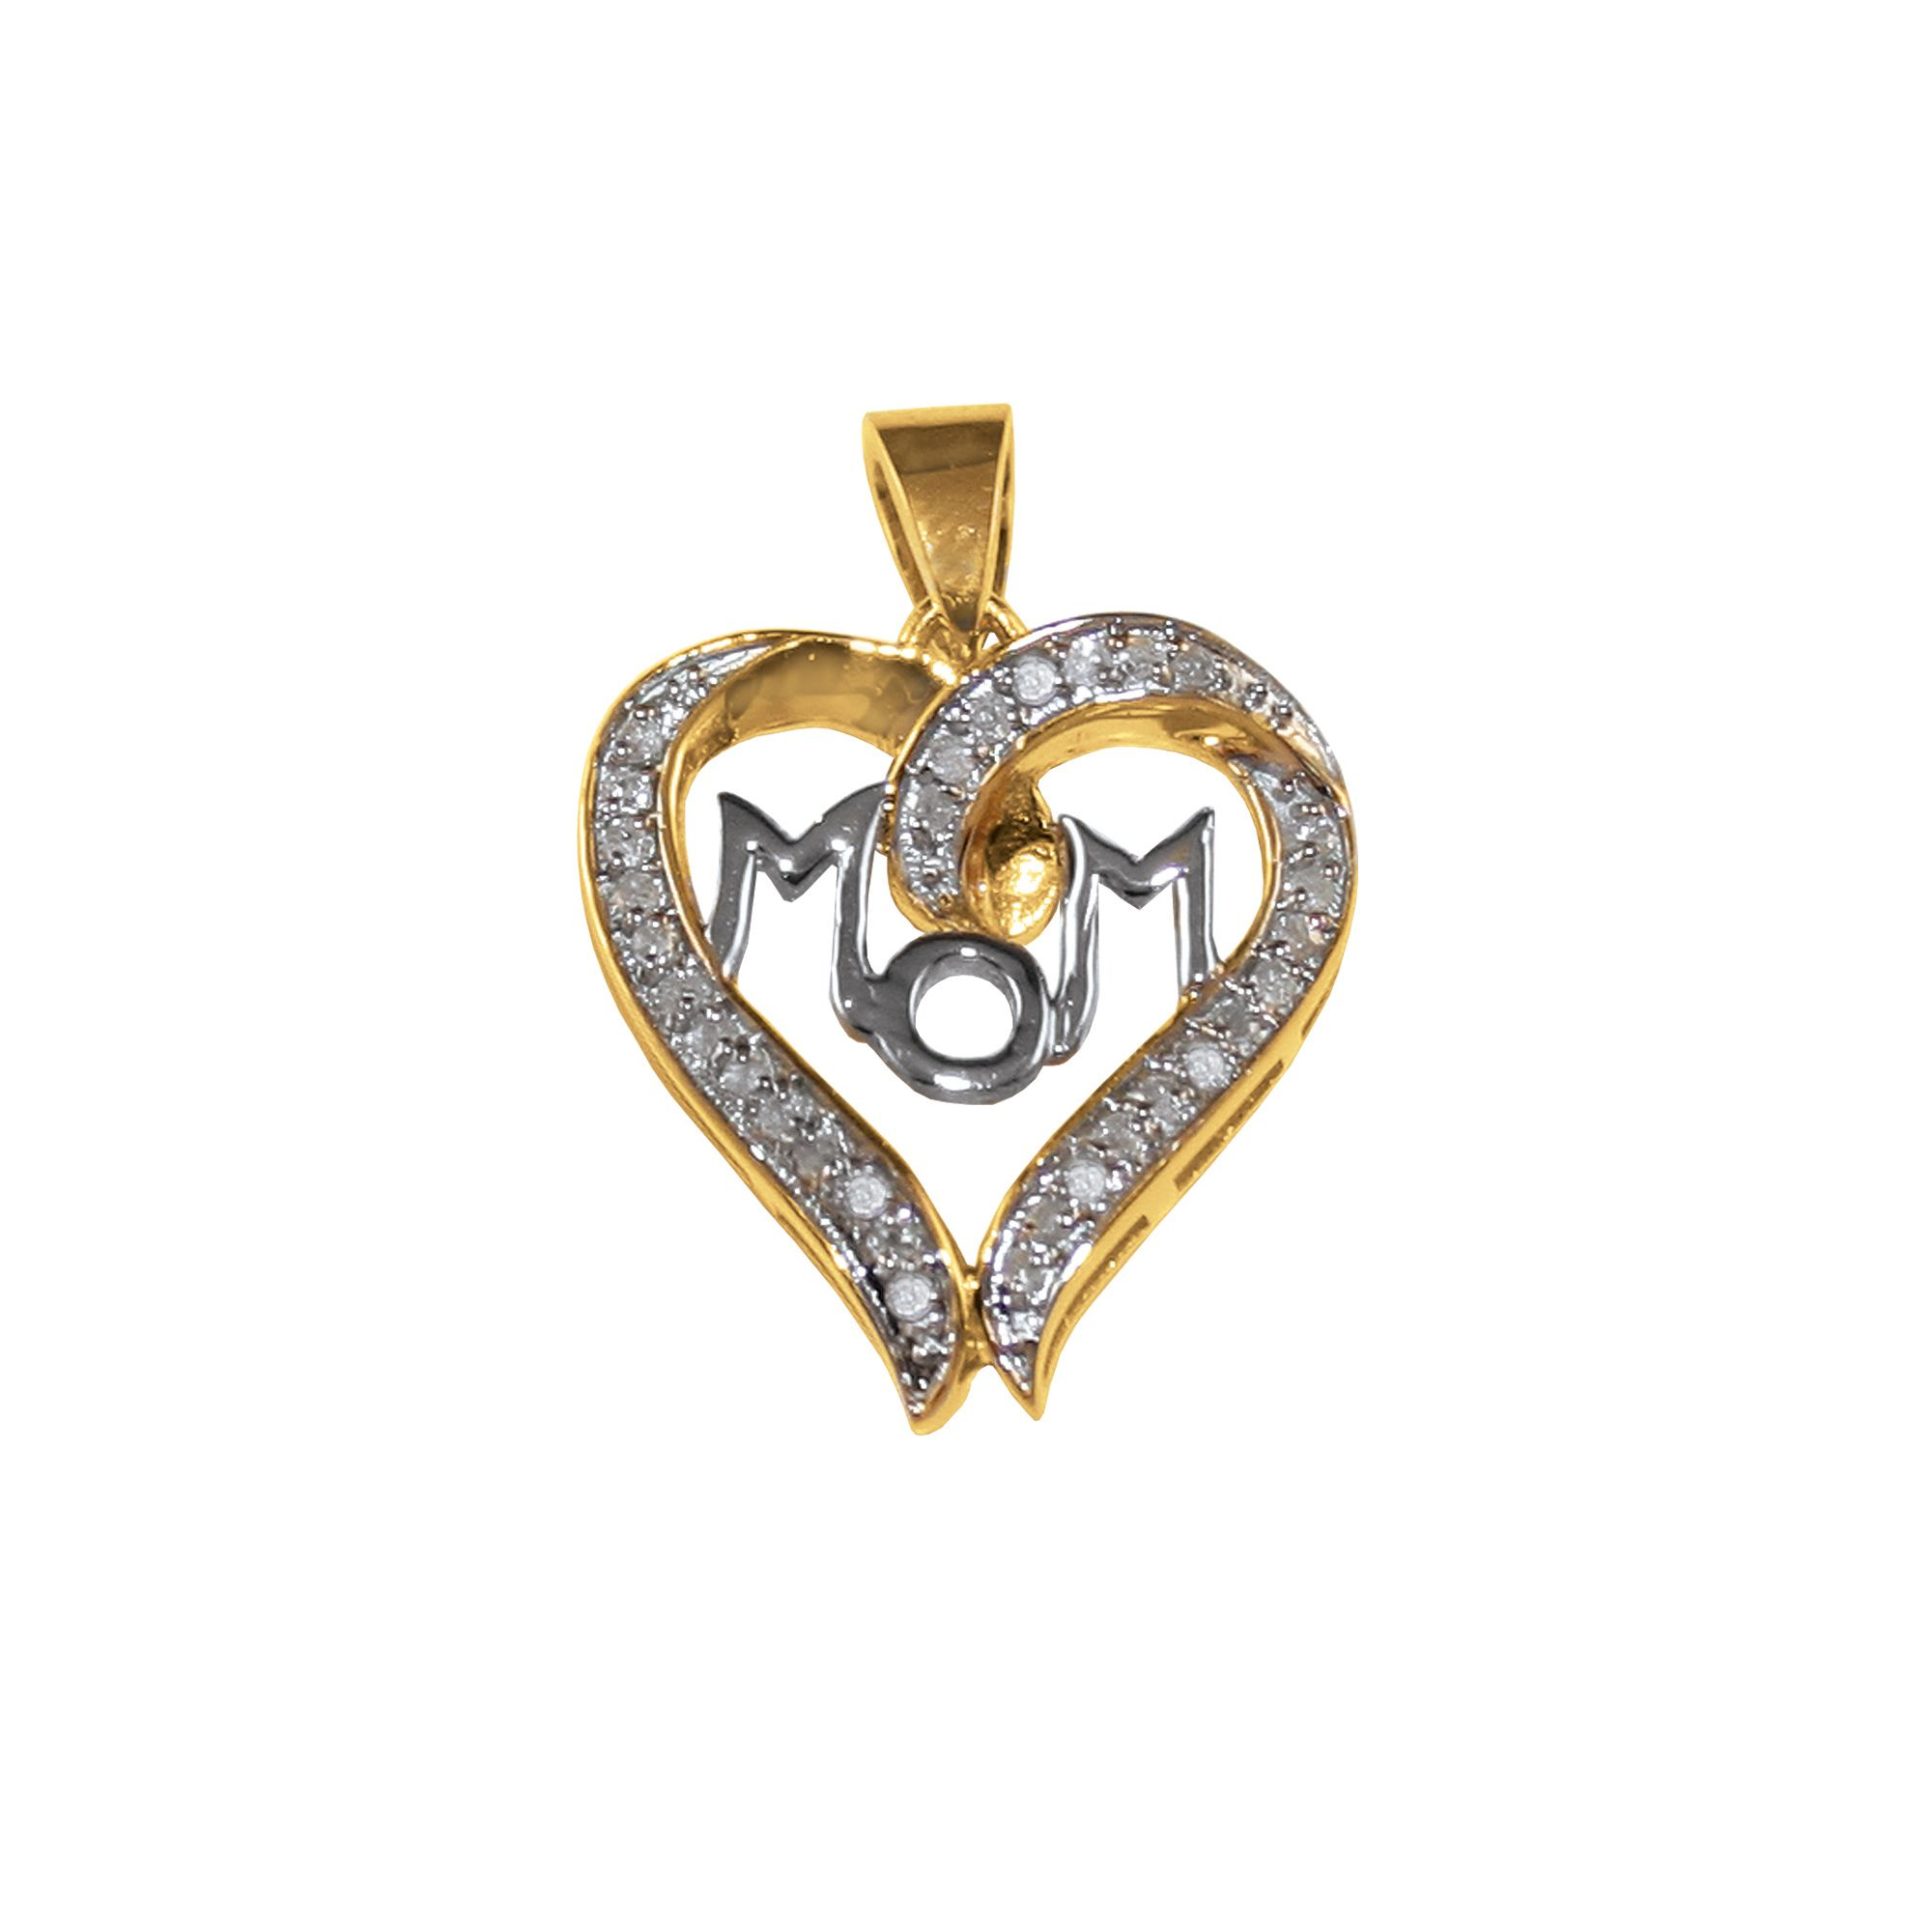 1/4 cttw Diamond Mom Heart Pendant with Chain - 18K Gold over Sterling Silver                                                    at mygofer.com